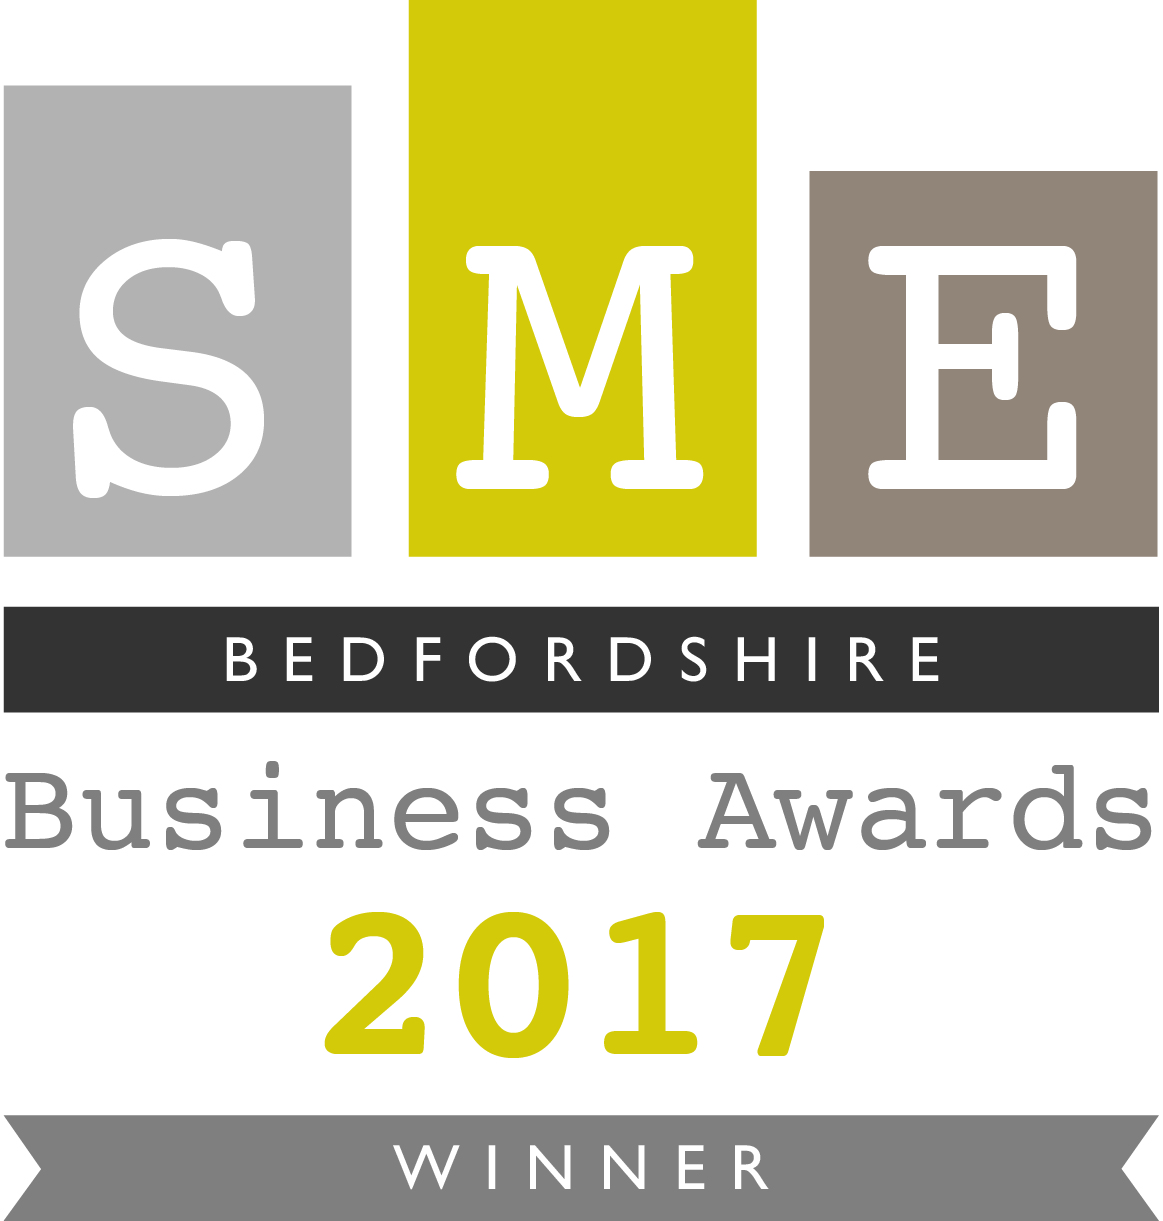 SME-Bedfordshire-Business-Award_Winner